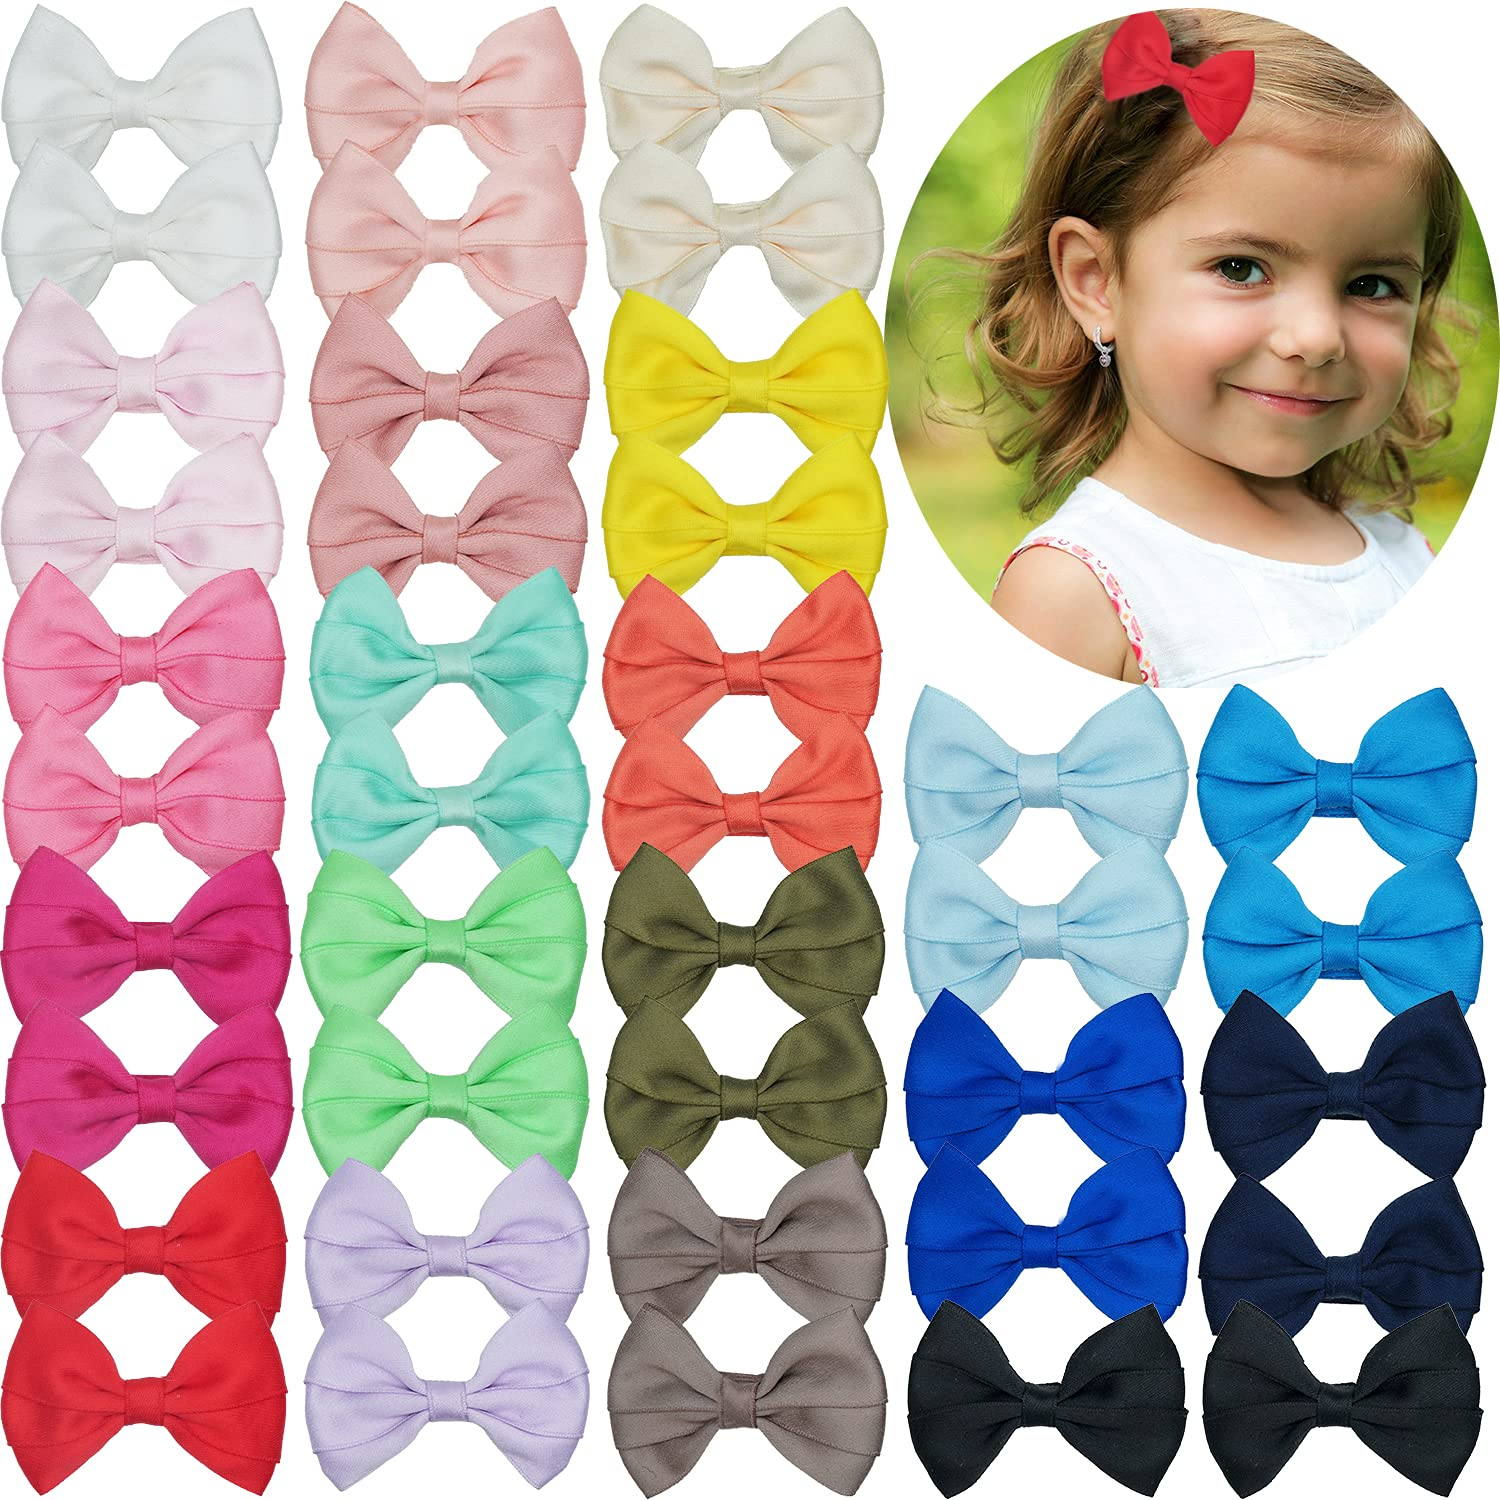 40PCS Baby Girls Special price Hair Clips 5 popular C 3Inch Bows Boutique Alligator